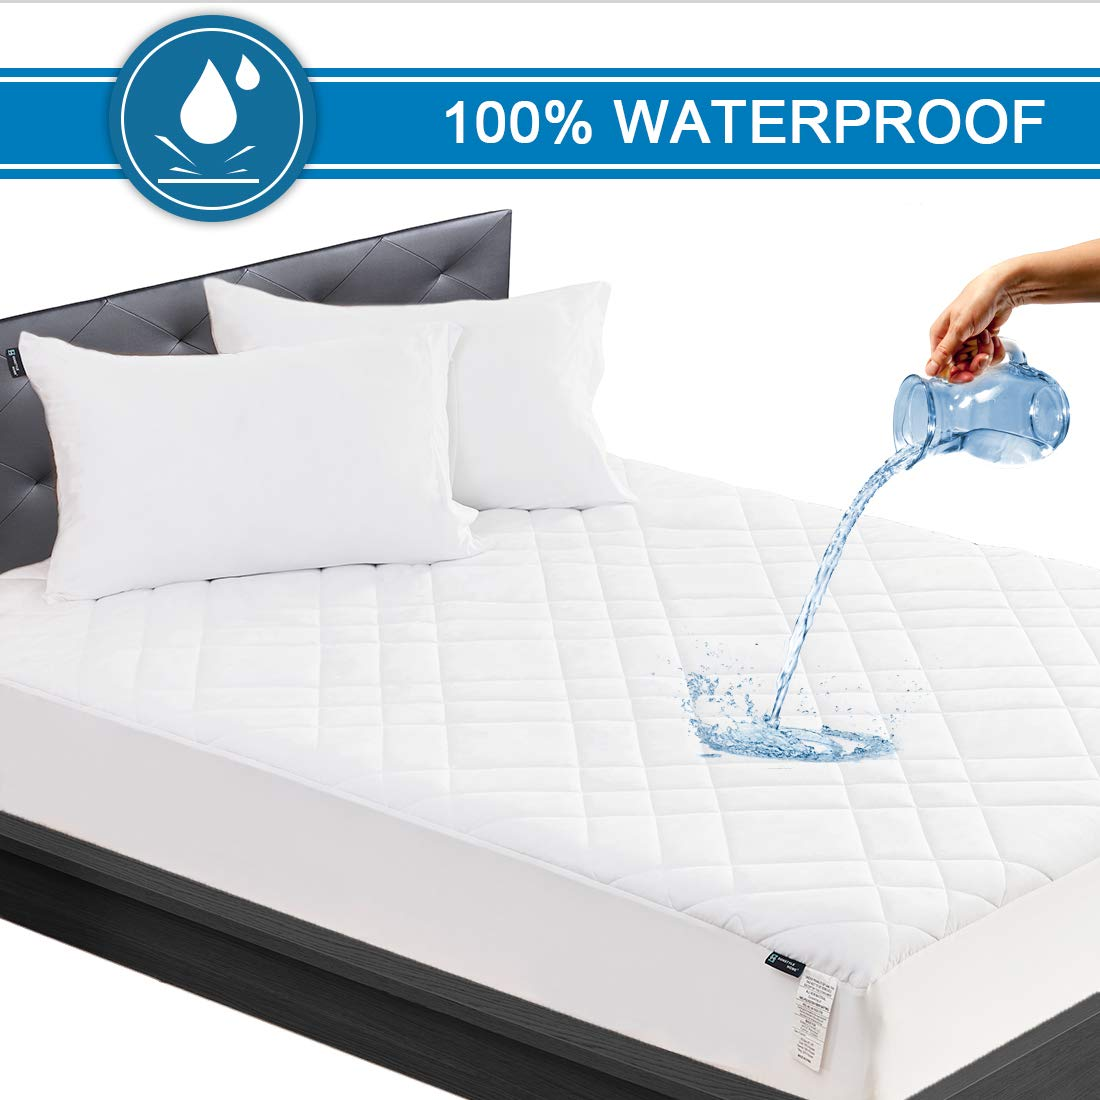 SunStyle Home Queen Size Quilted Fitted Mattress Pad Microfiber 100% Waterproof Mattress Protector Cover Stretches up to 16 Inches Deep, Soft Durable Breathable Noiseless Mattress Topper